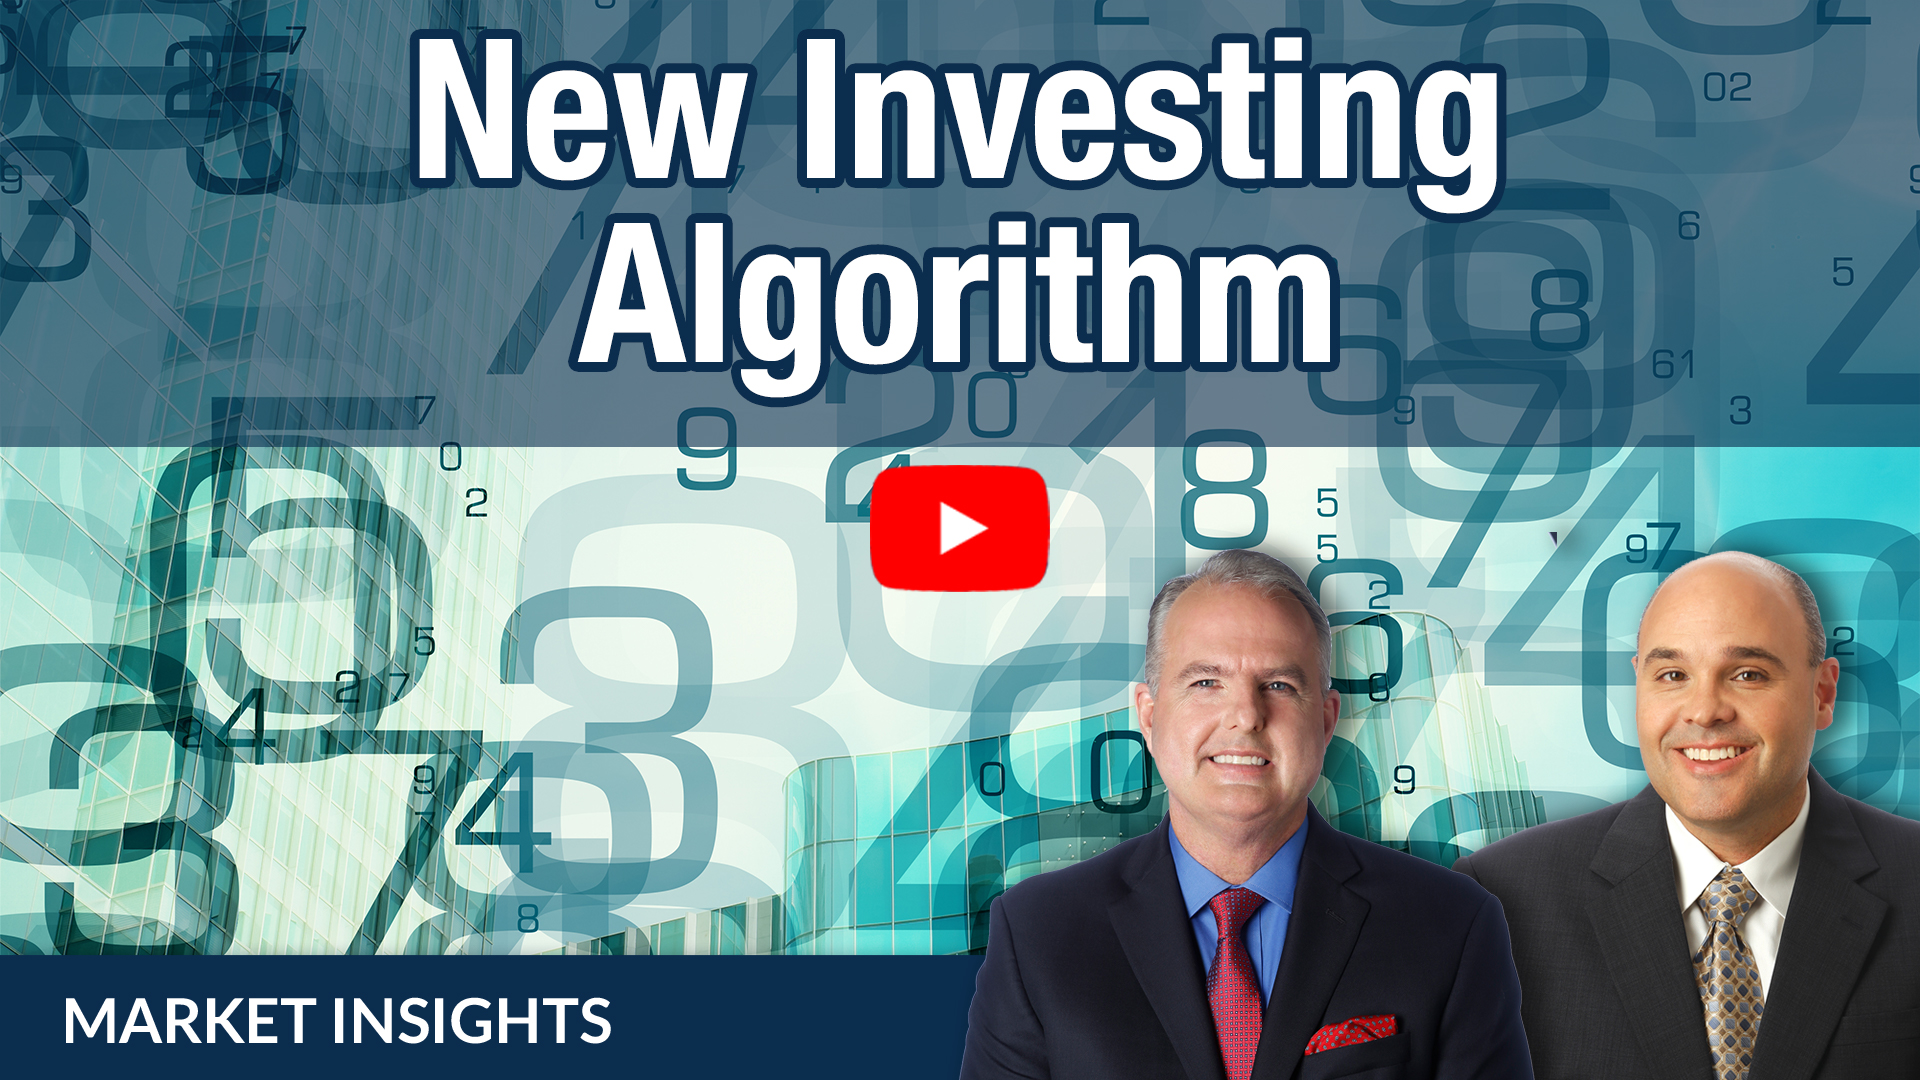 Jeff Yastine and Brian Christopher explain how you can use their patented trading algorithm to score gains of 1,000% or more over and over again.